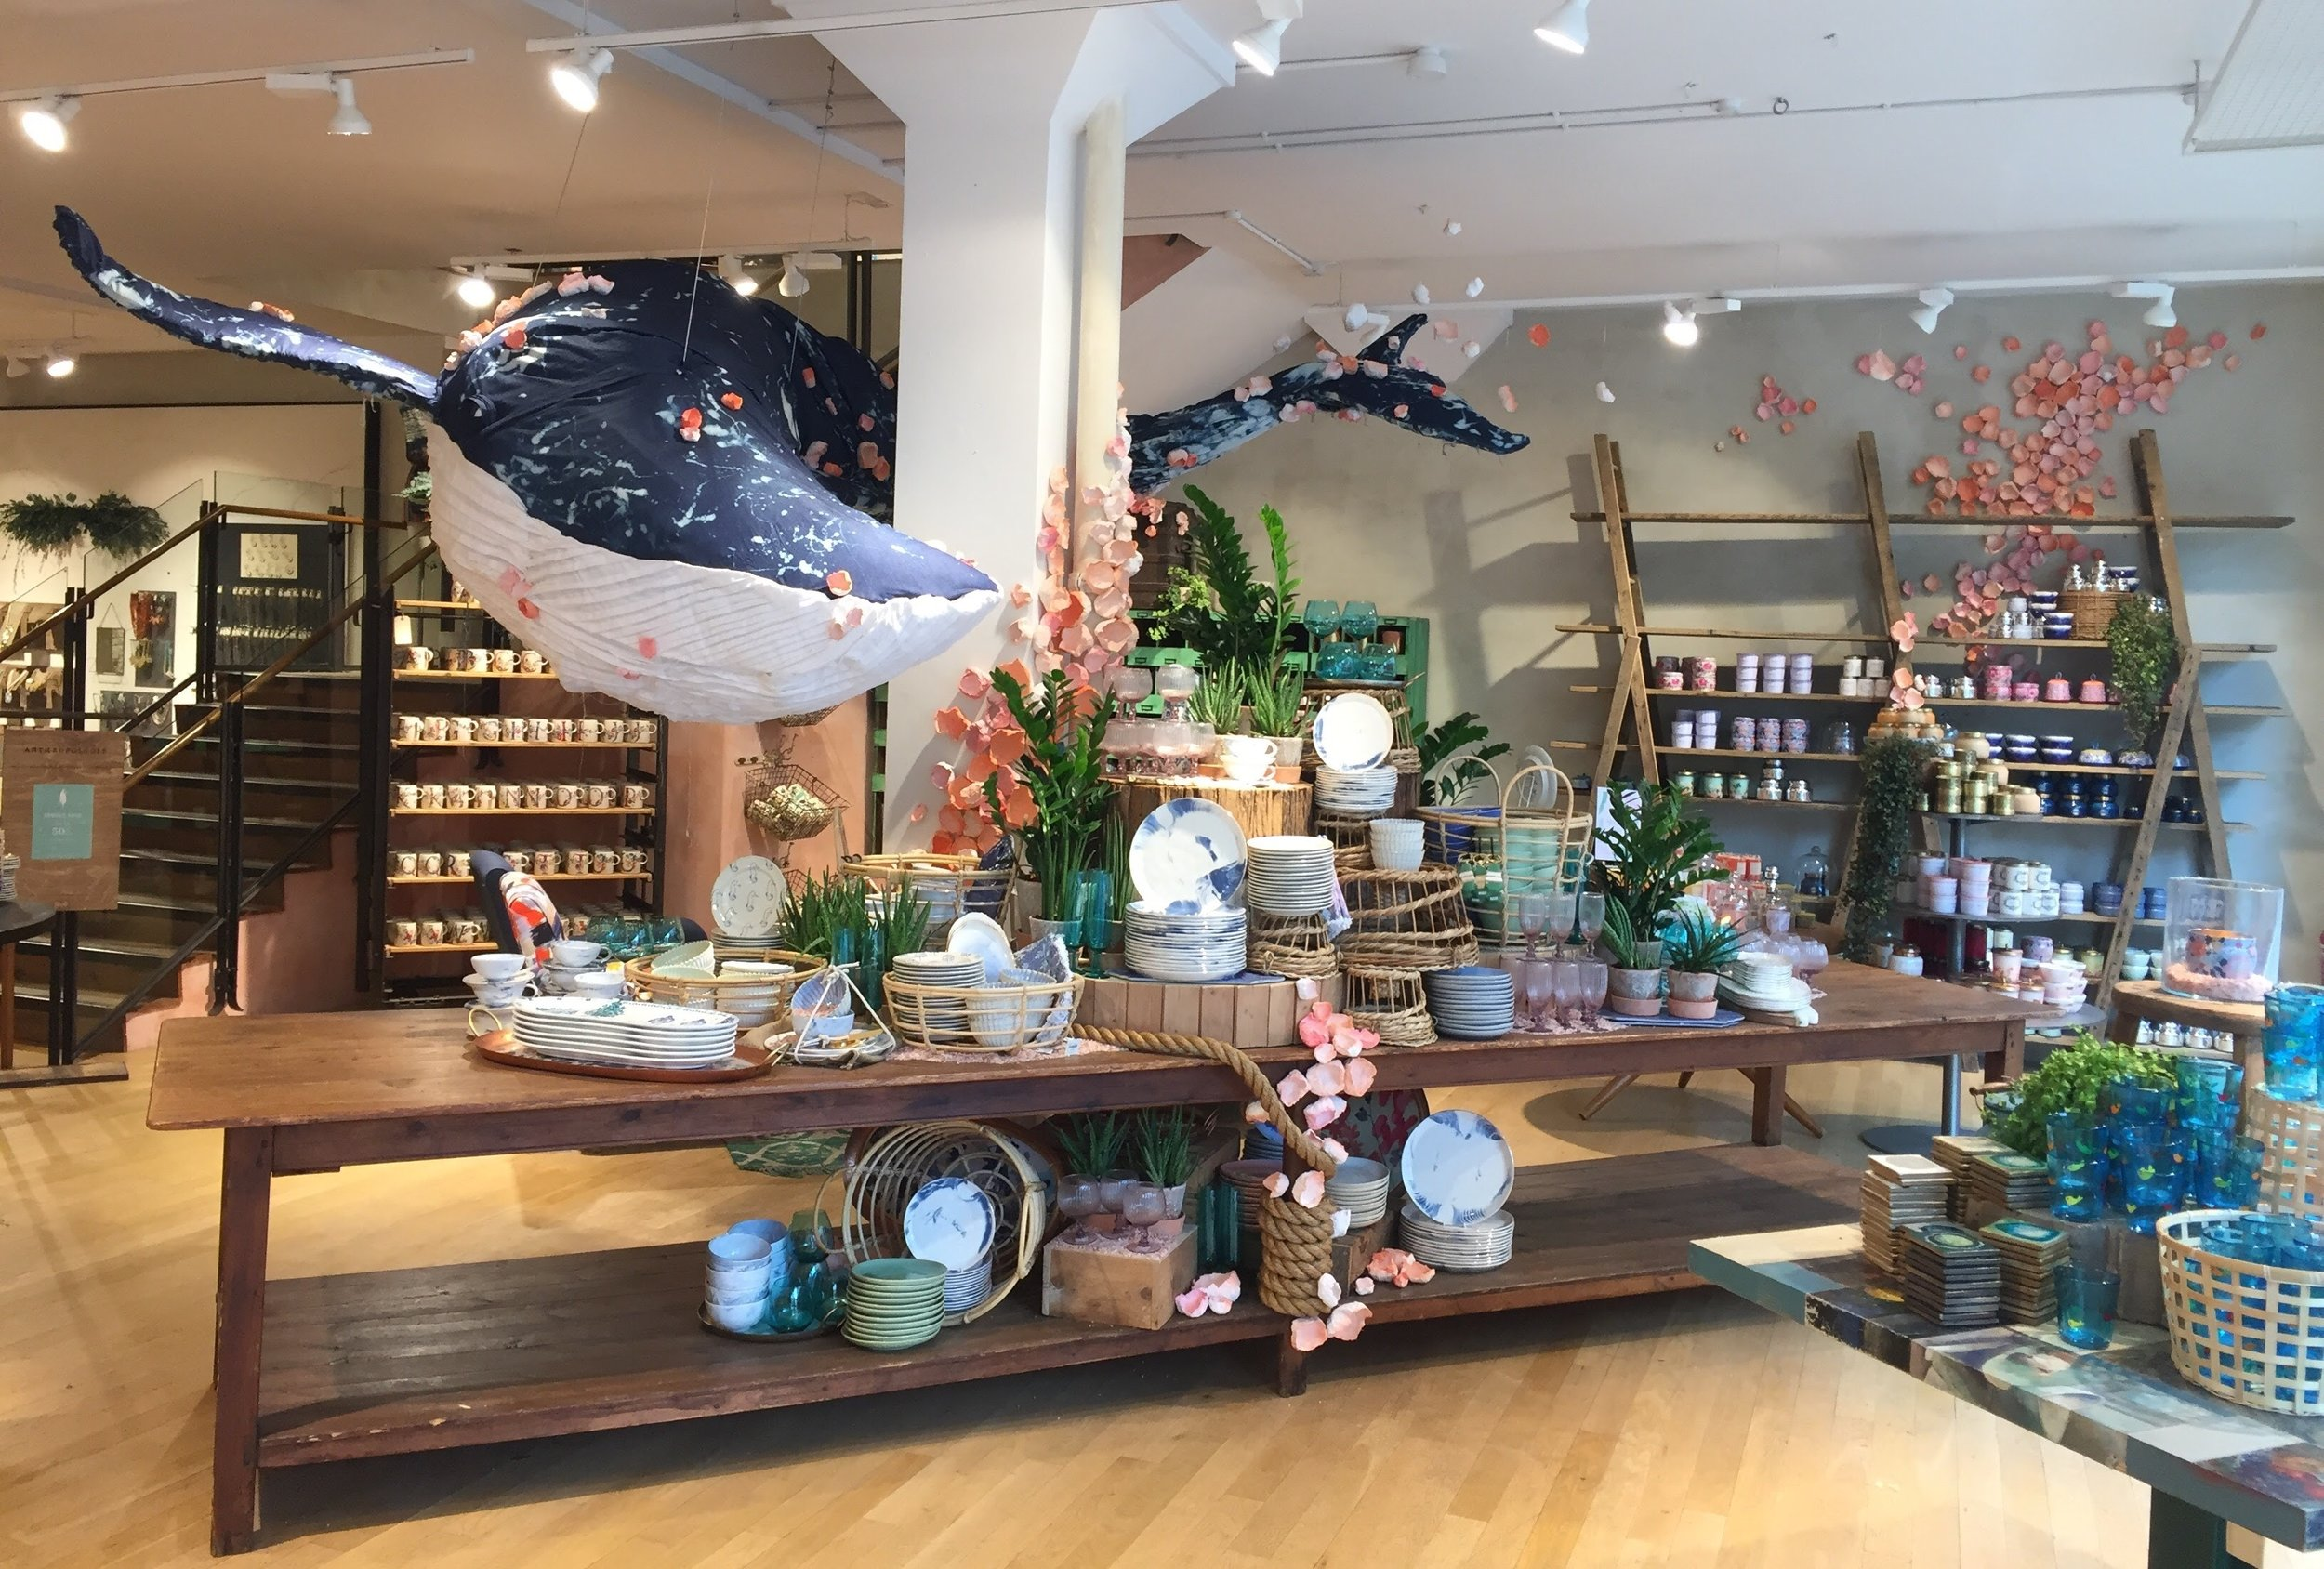 The five-metre long Denim Whale (above) made quite a splash at the Bath store